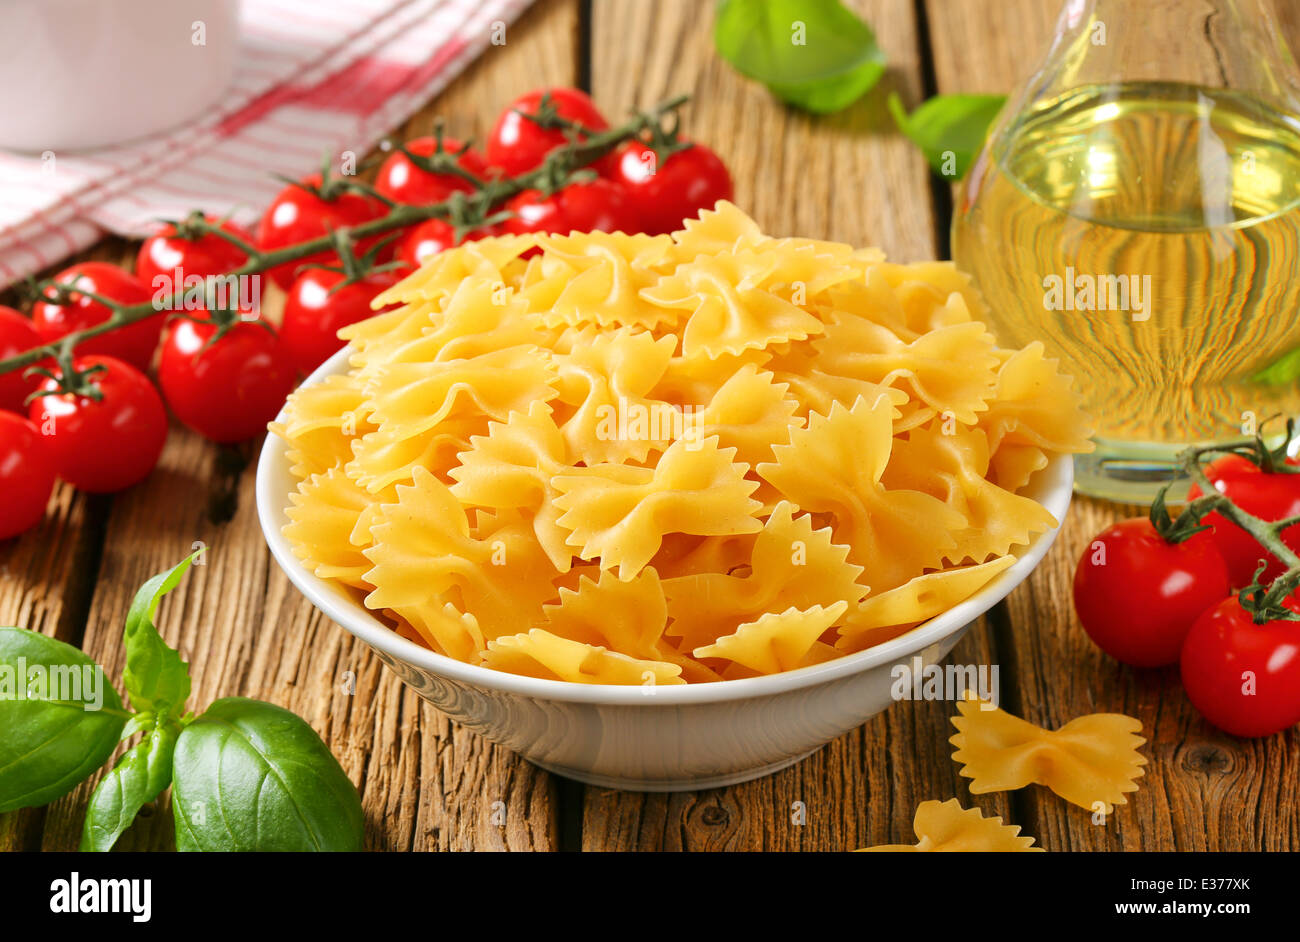 Uncooked bow tie pasta and other ingredients - Stock Image